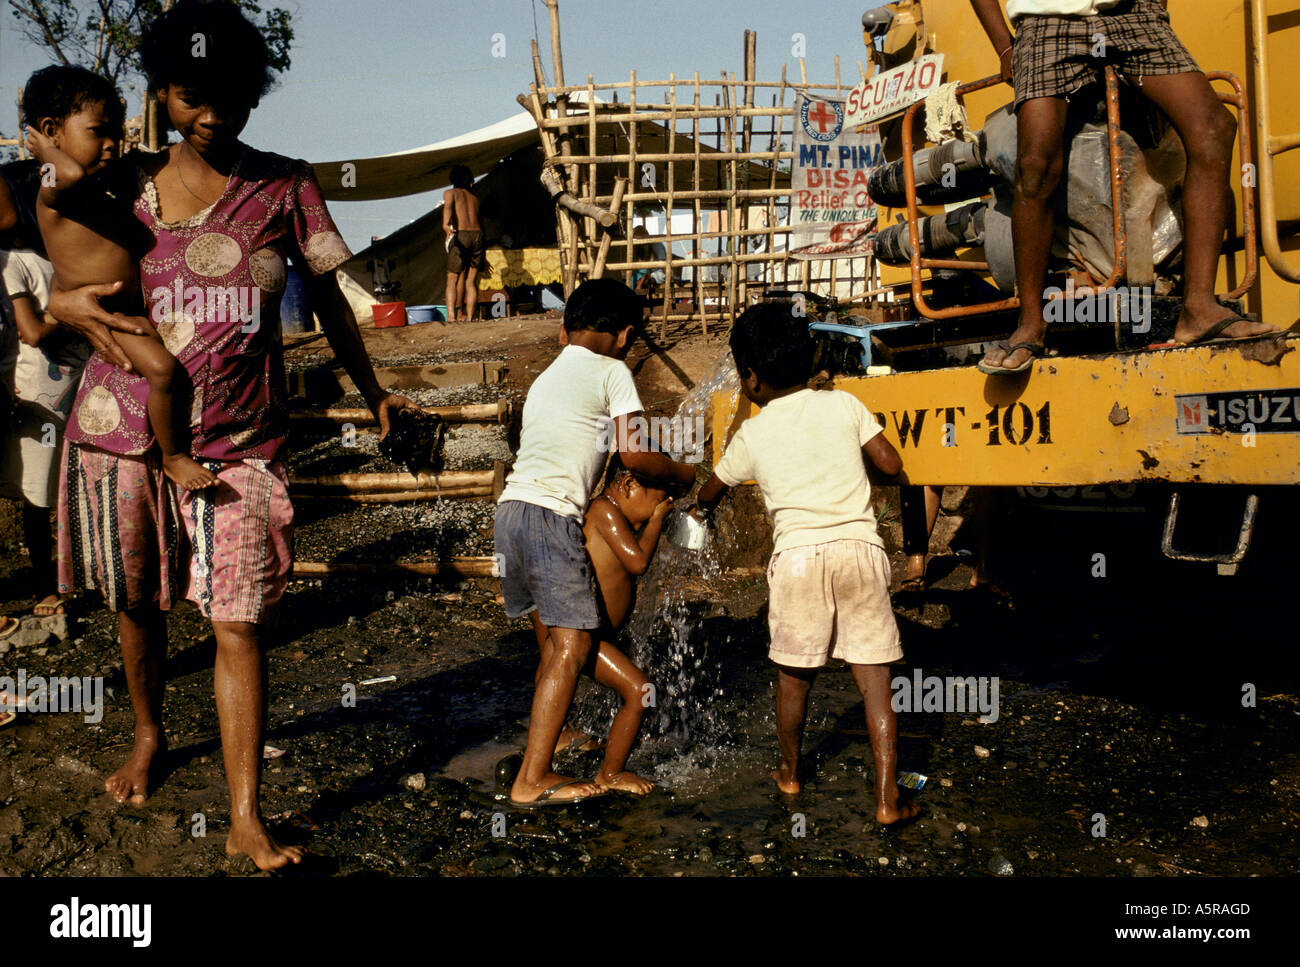 MOUNT PINATUBO DISASTER FEBRUARY 1991 A YOUNG CHILD IS WASHED BY OLDER CHILDREN AS FRESH WATER IS DELIVERED TO THE CAMP - Stock Image